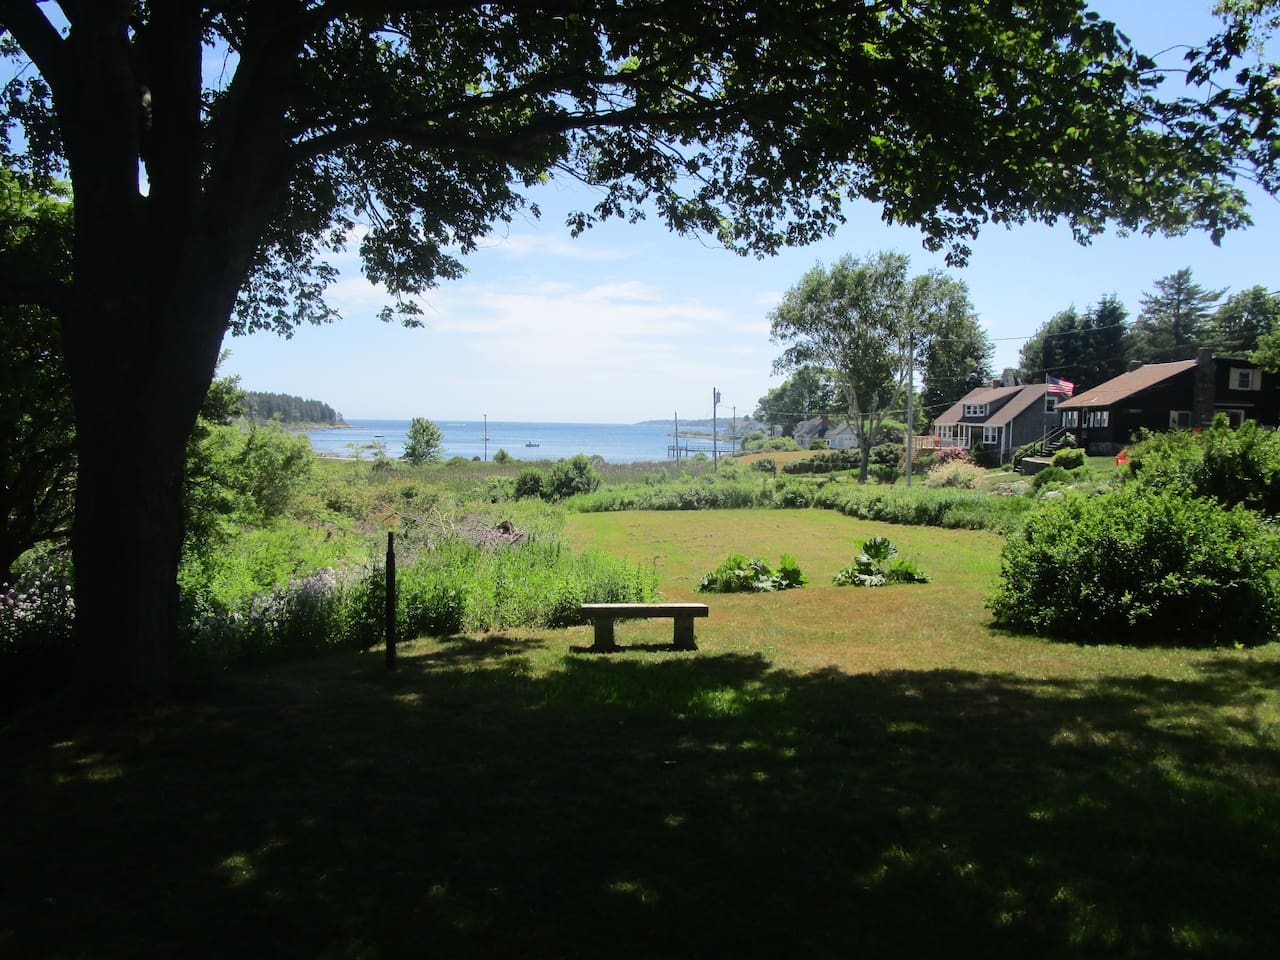 This is your view of Lowell's Cove. Just a short walk to the shore.